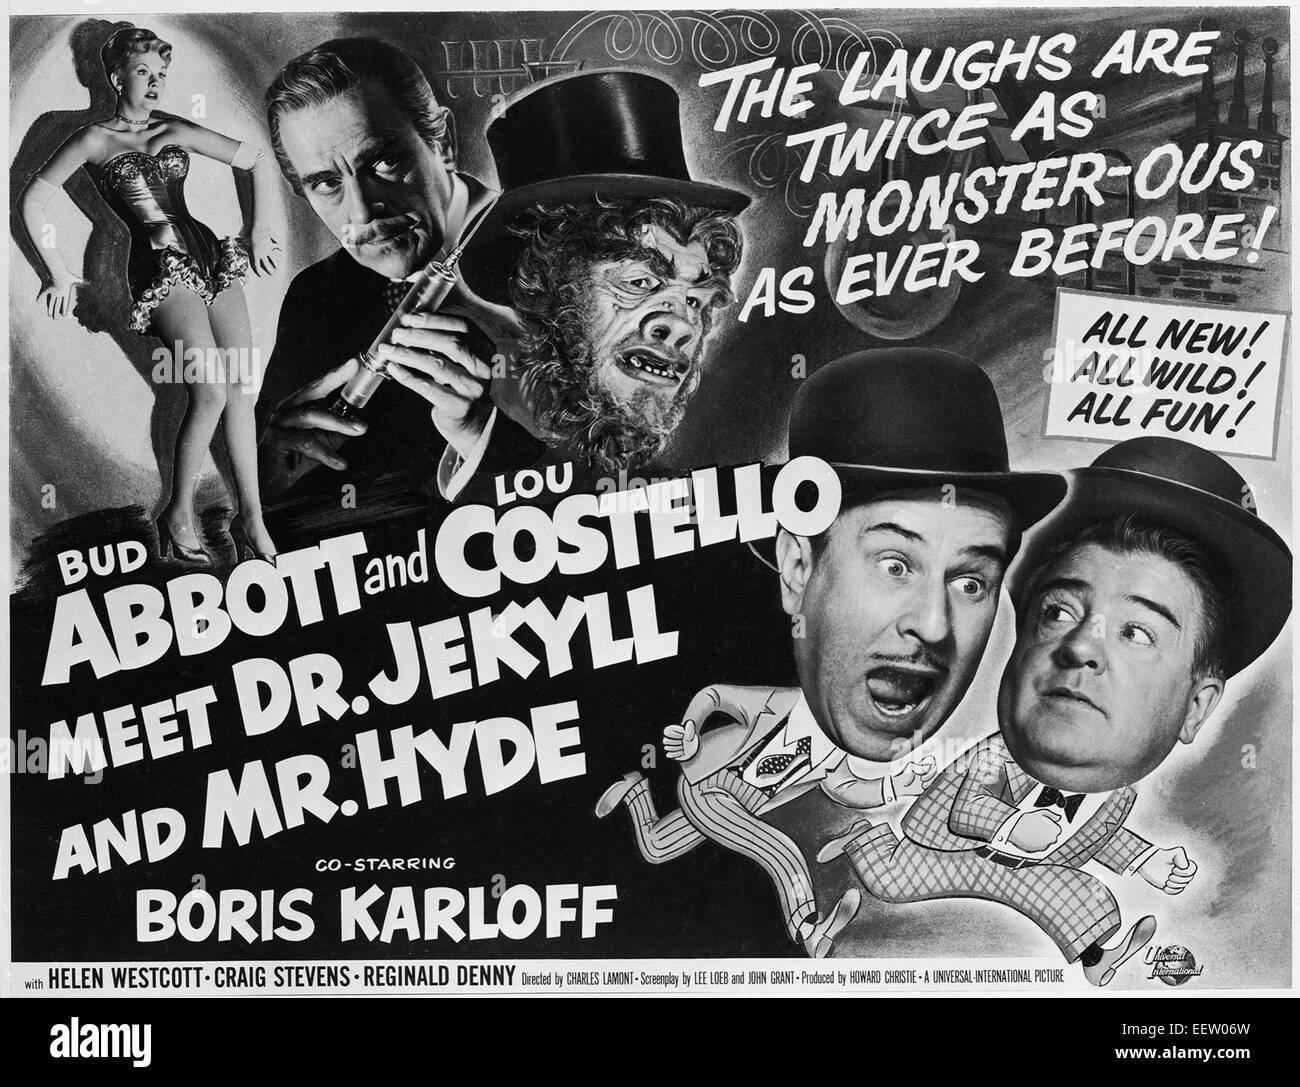 abbott and costello meet dr jekyll and mr hyde movie